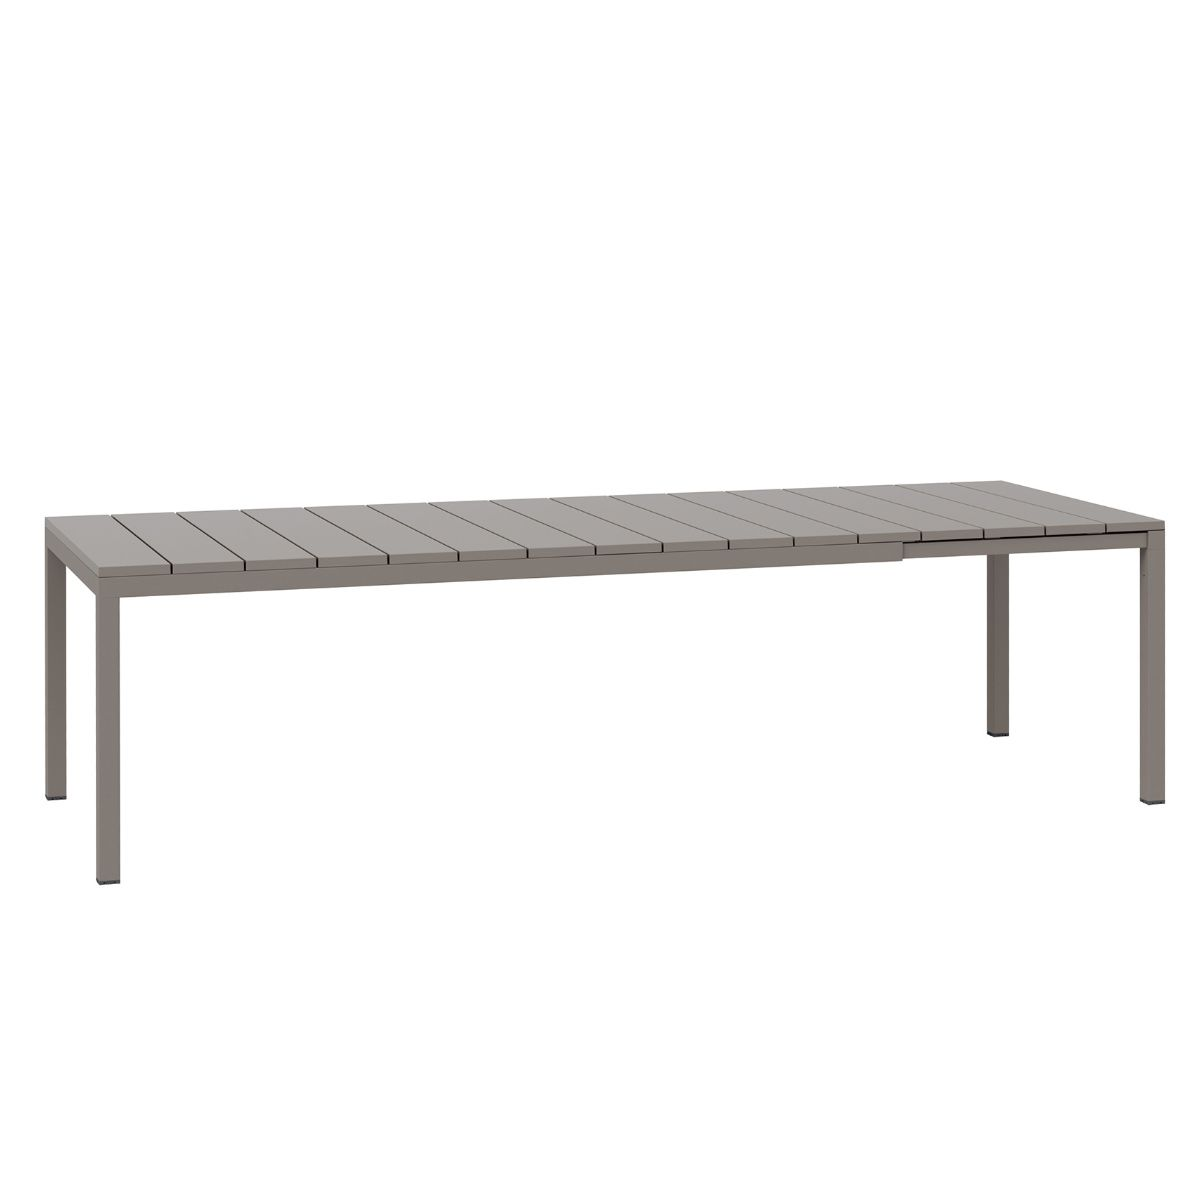 Table De Jardin Extensible Design Rio Nardi Zendart Design